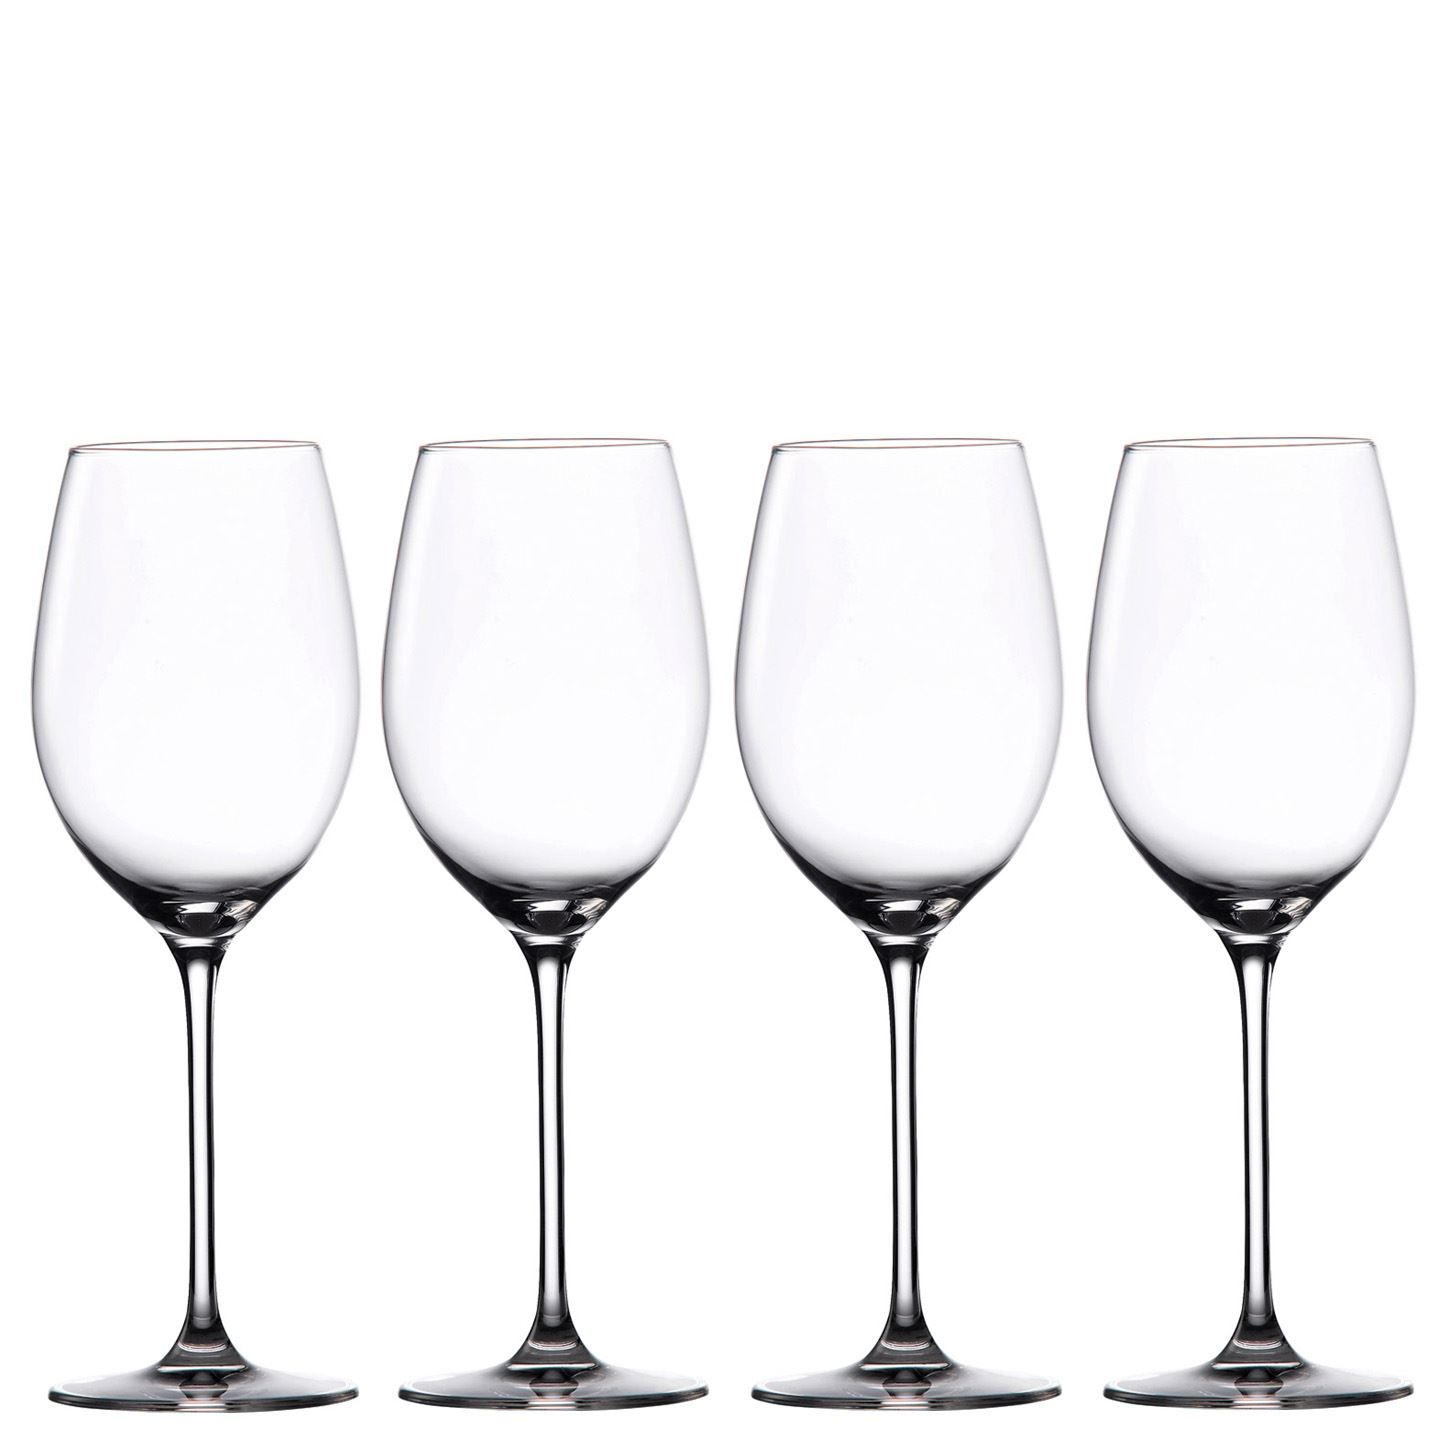 Marquis by Waterford Moments White Wine Glass | Set of 4 | Crystal